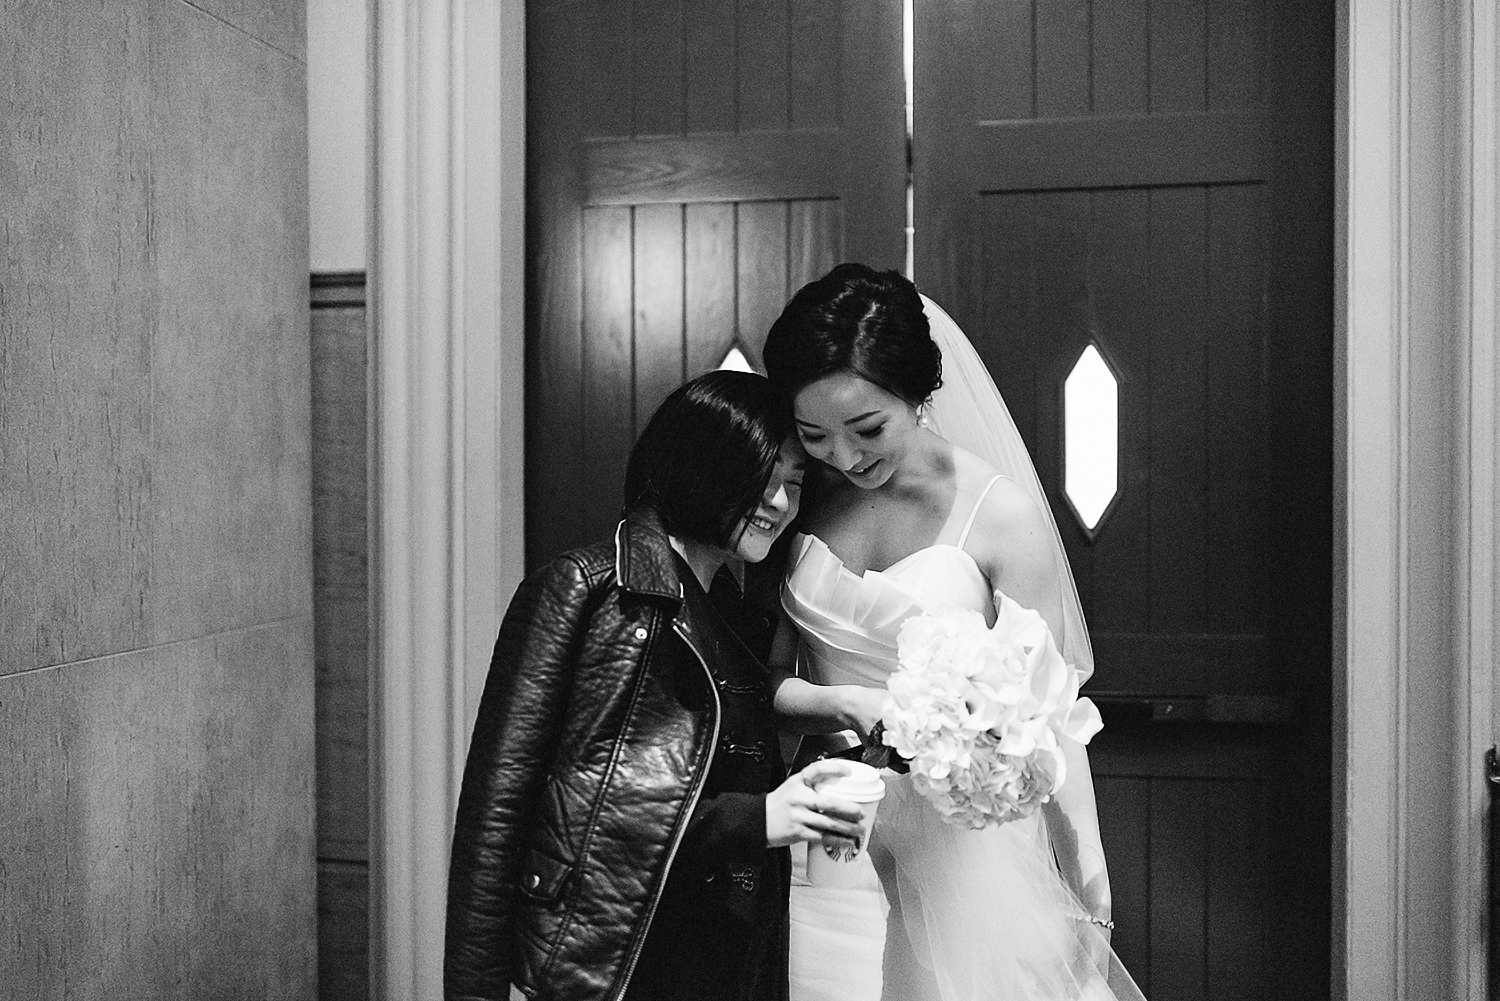 Best-Wedding-Photographers-Toronto_-Urban-City-Wedding-Photography-Downtown-Toronto-Photographer_Vintage-Bride-and-Groom-Details_The-Chase-Wedding-Venue_Candid-Photojournalistic-Documentary-Beautiful-BFF-Bride.jpg